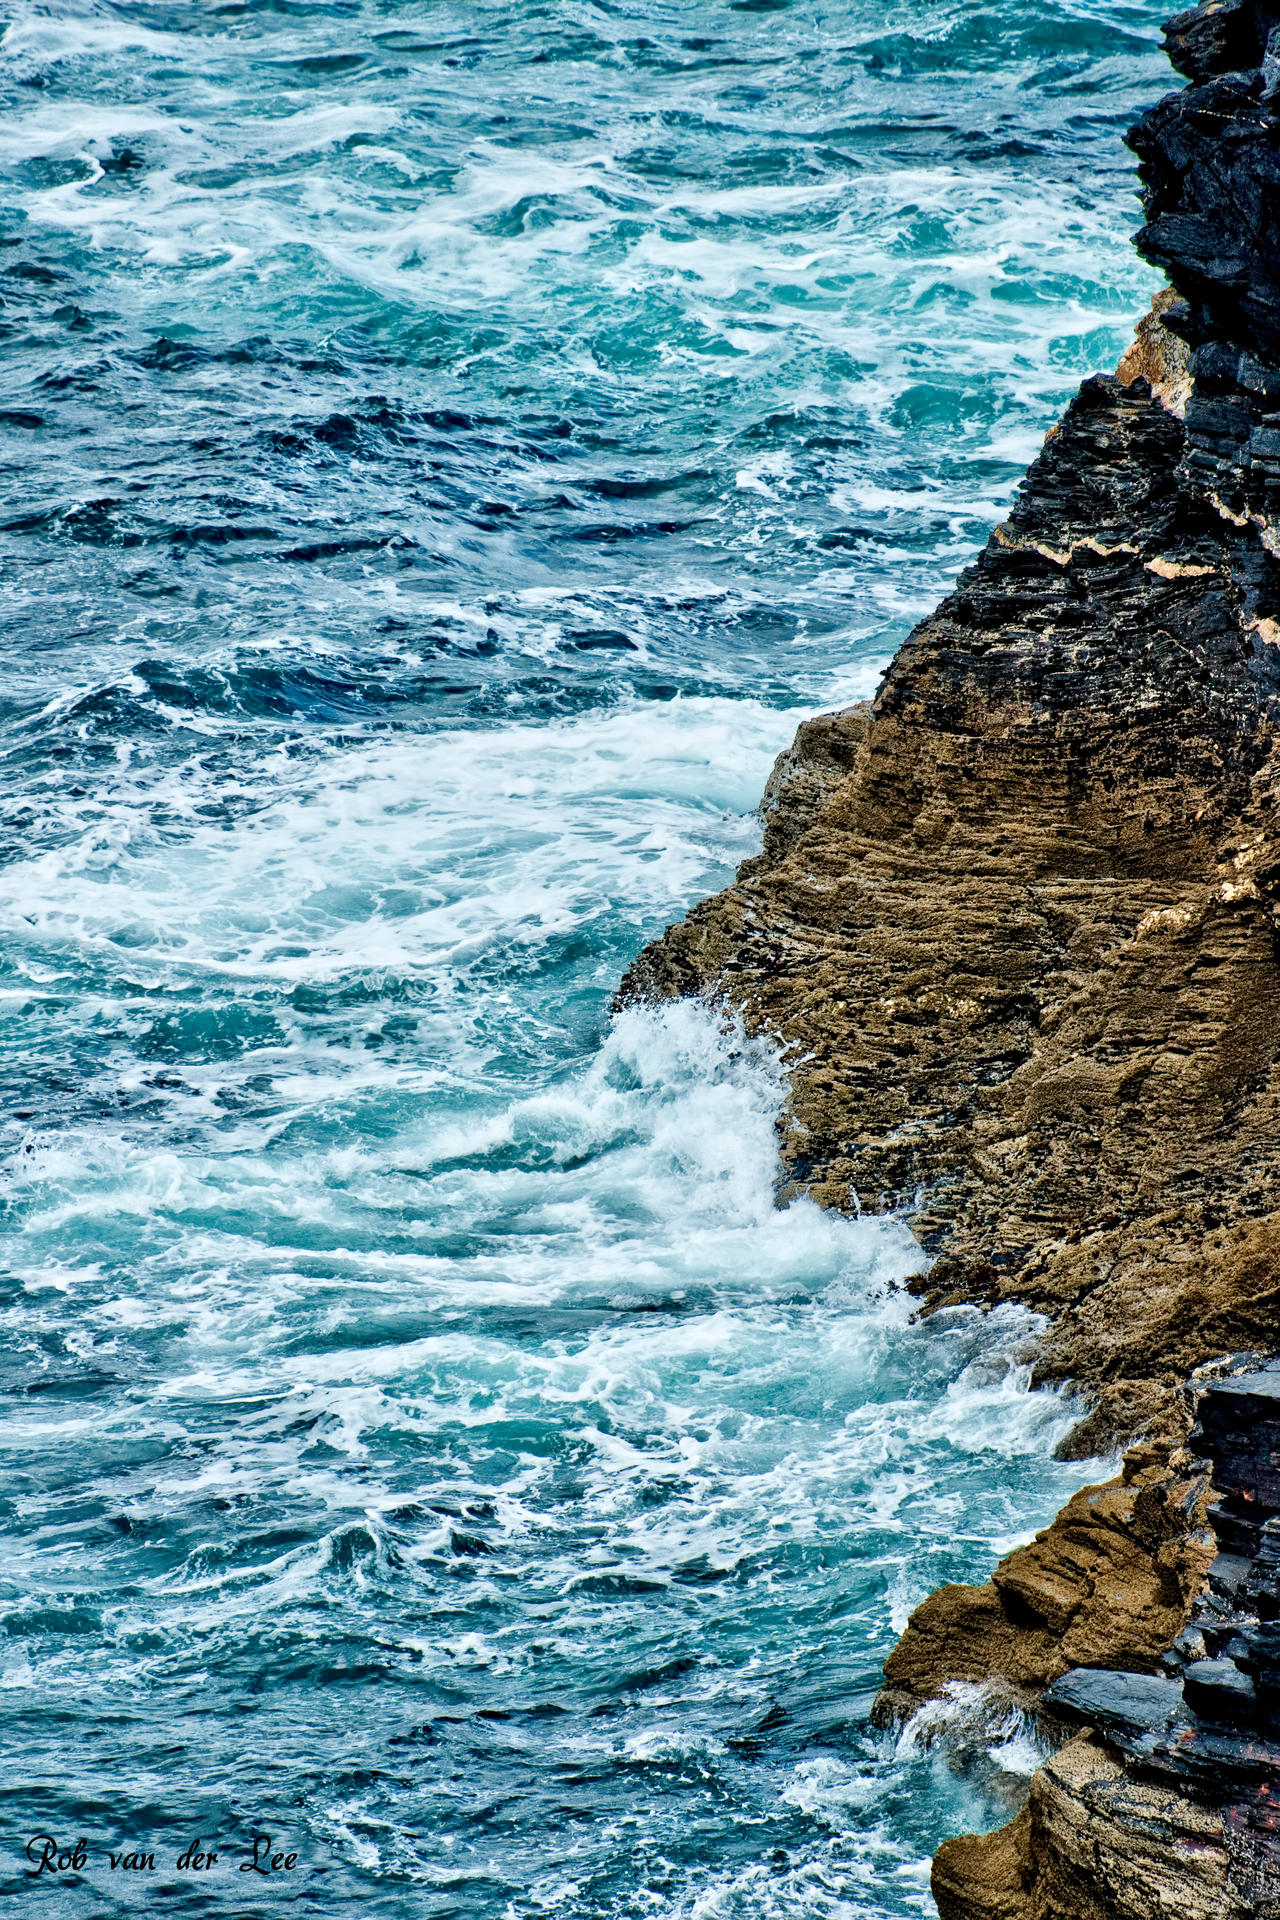 Waves on the rocks by forgottenson1